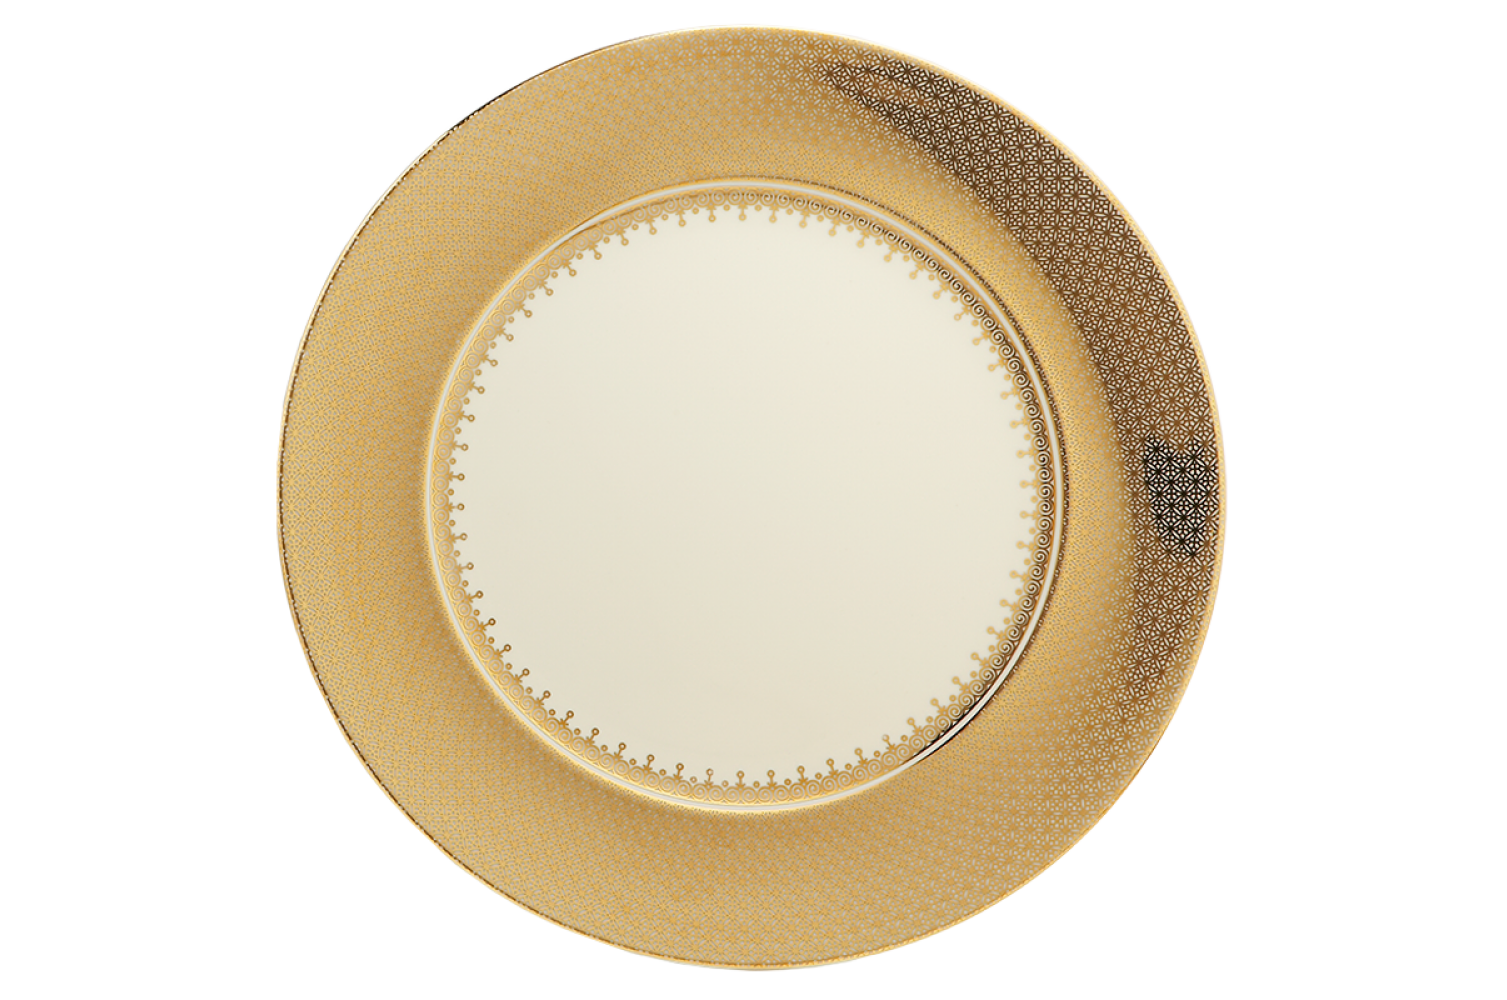 Gold plate png. Lace service